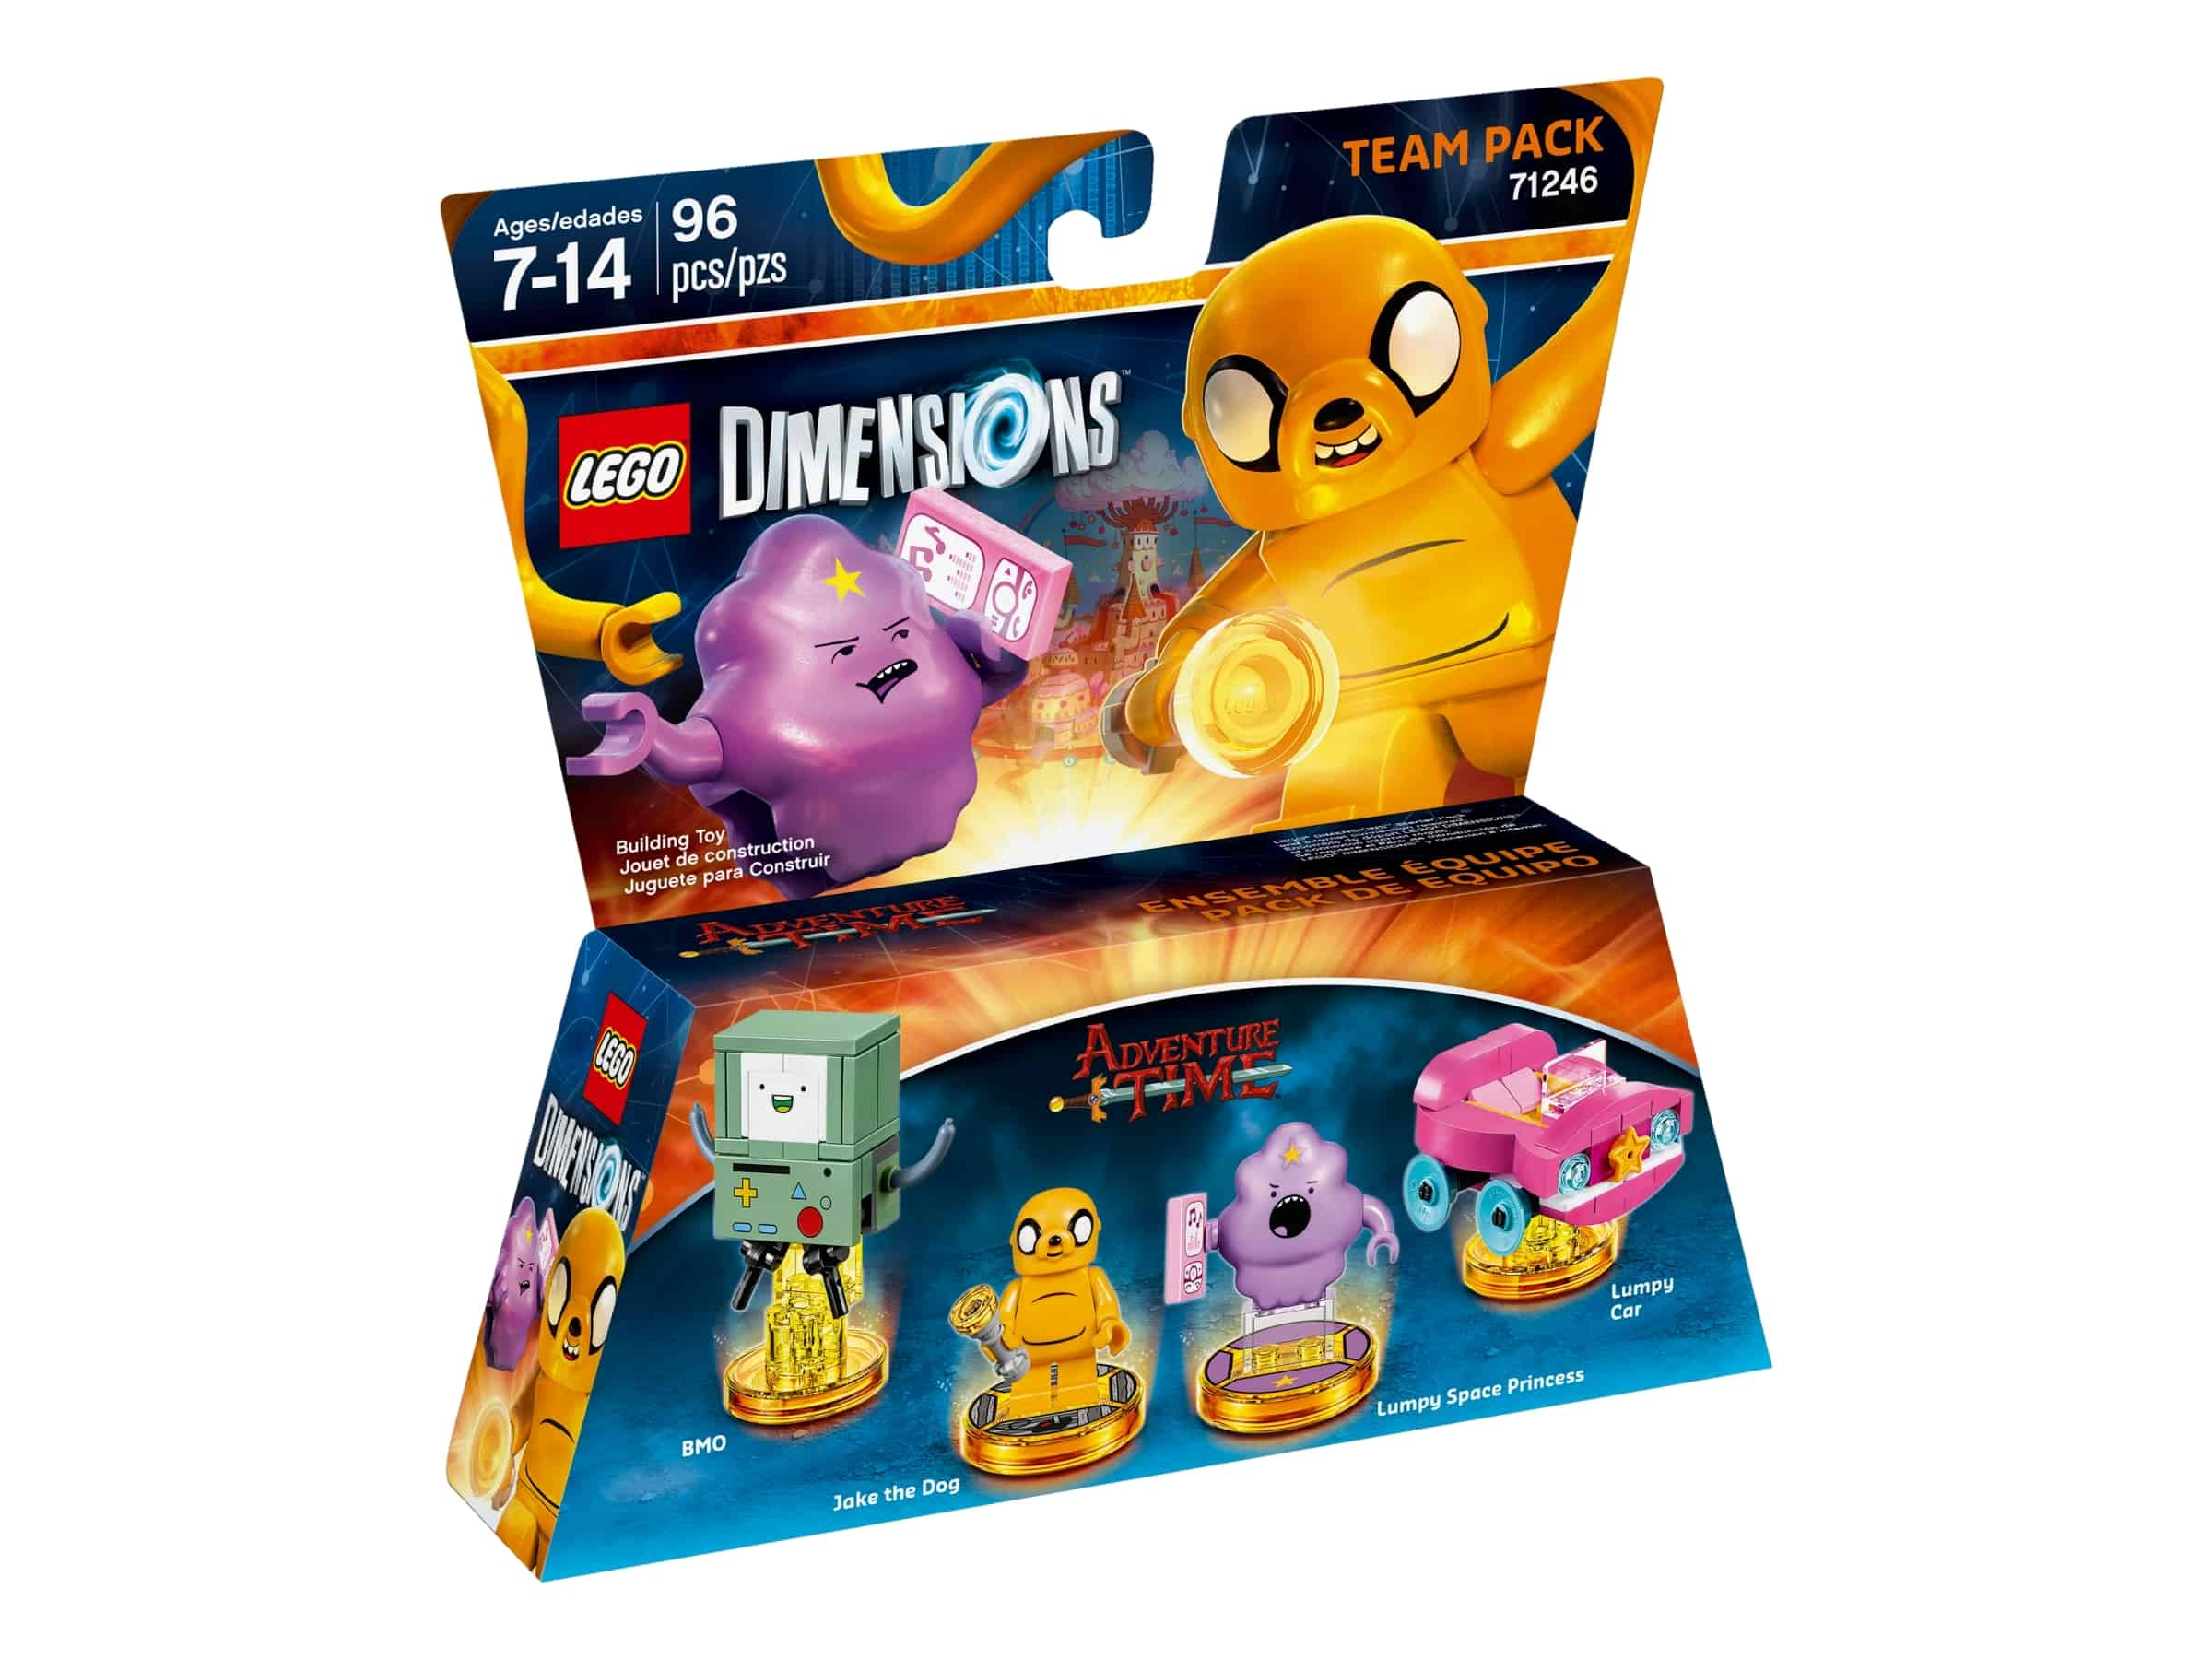 lego 71246 adventure time team pack